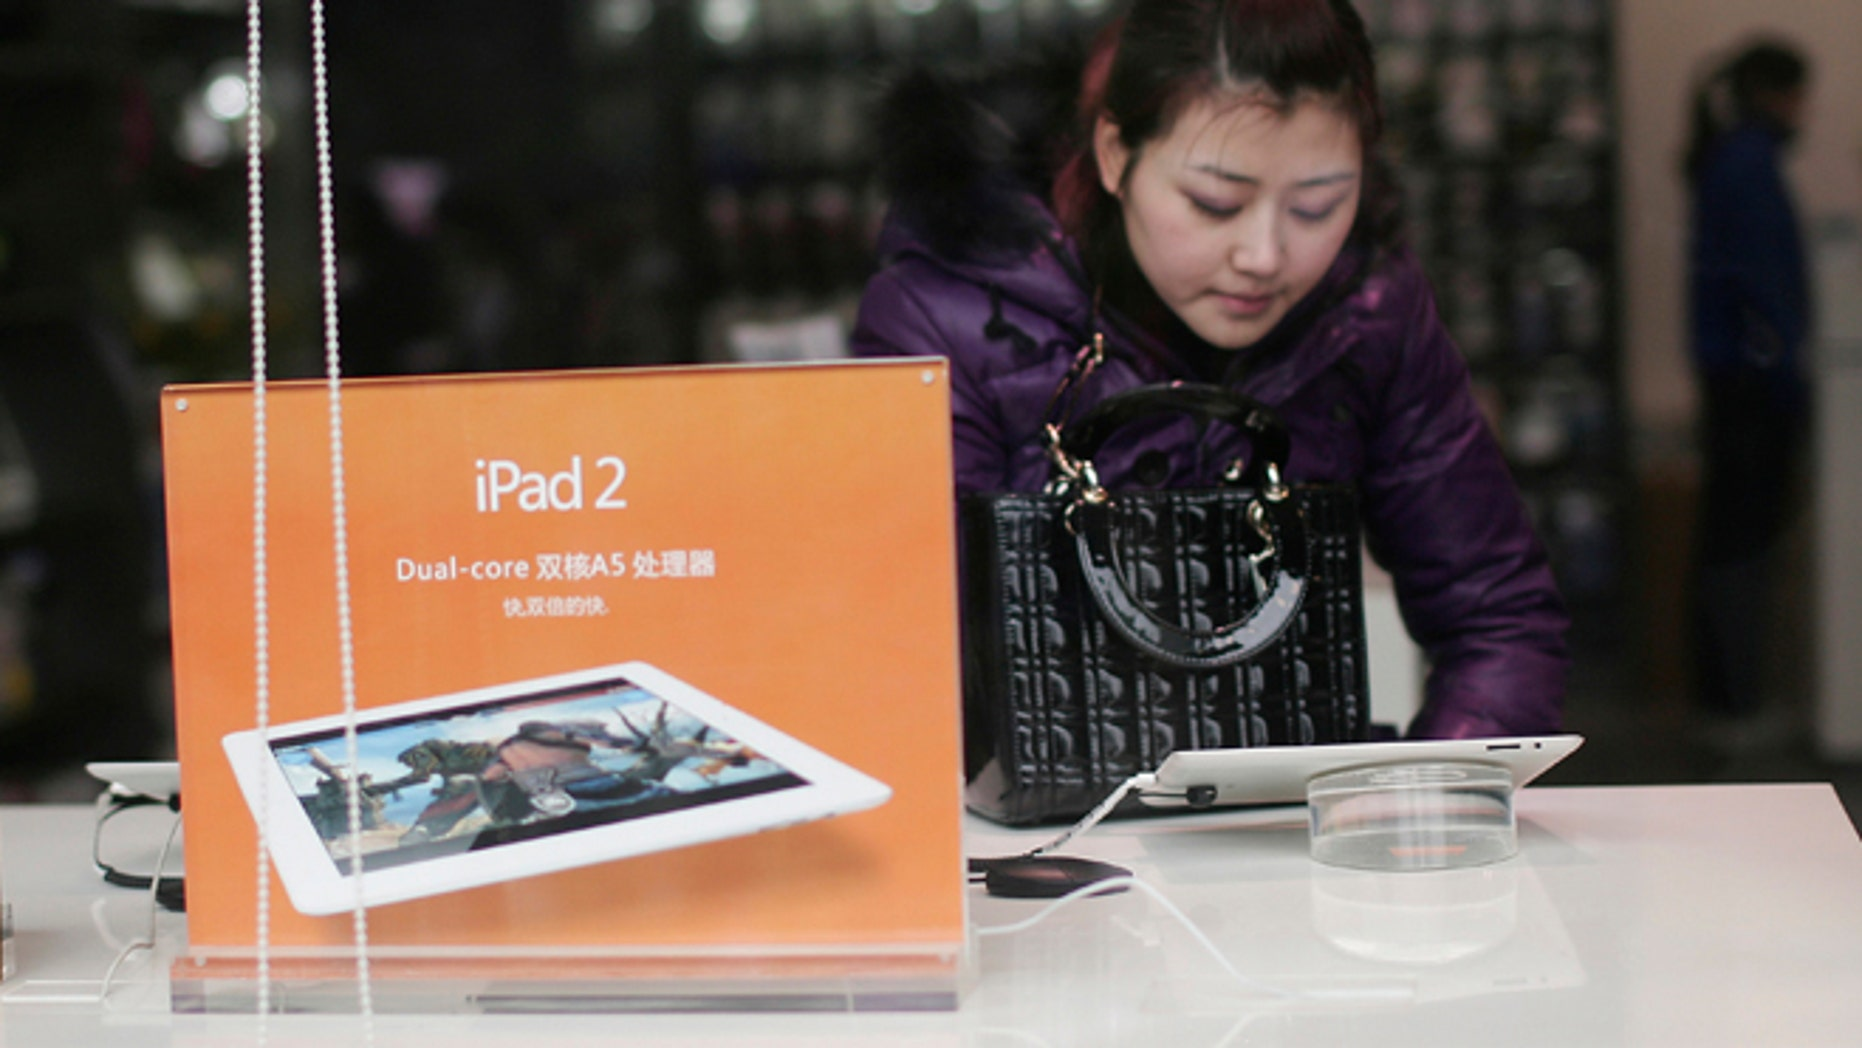 Feb. 27, 2012: A customer tries out Apple's iPad 2 at a retail shop in Chongqing, China. The Taiwan-based maker Proview Electronics said Monday it is now seeking to regain worldwide rights to the iPad name and is suing Apple Inc. for alleged fraud and unfair competition.